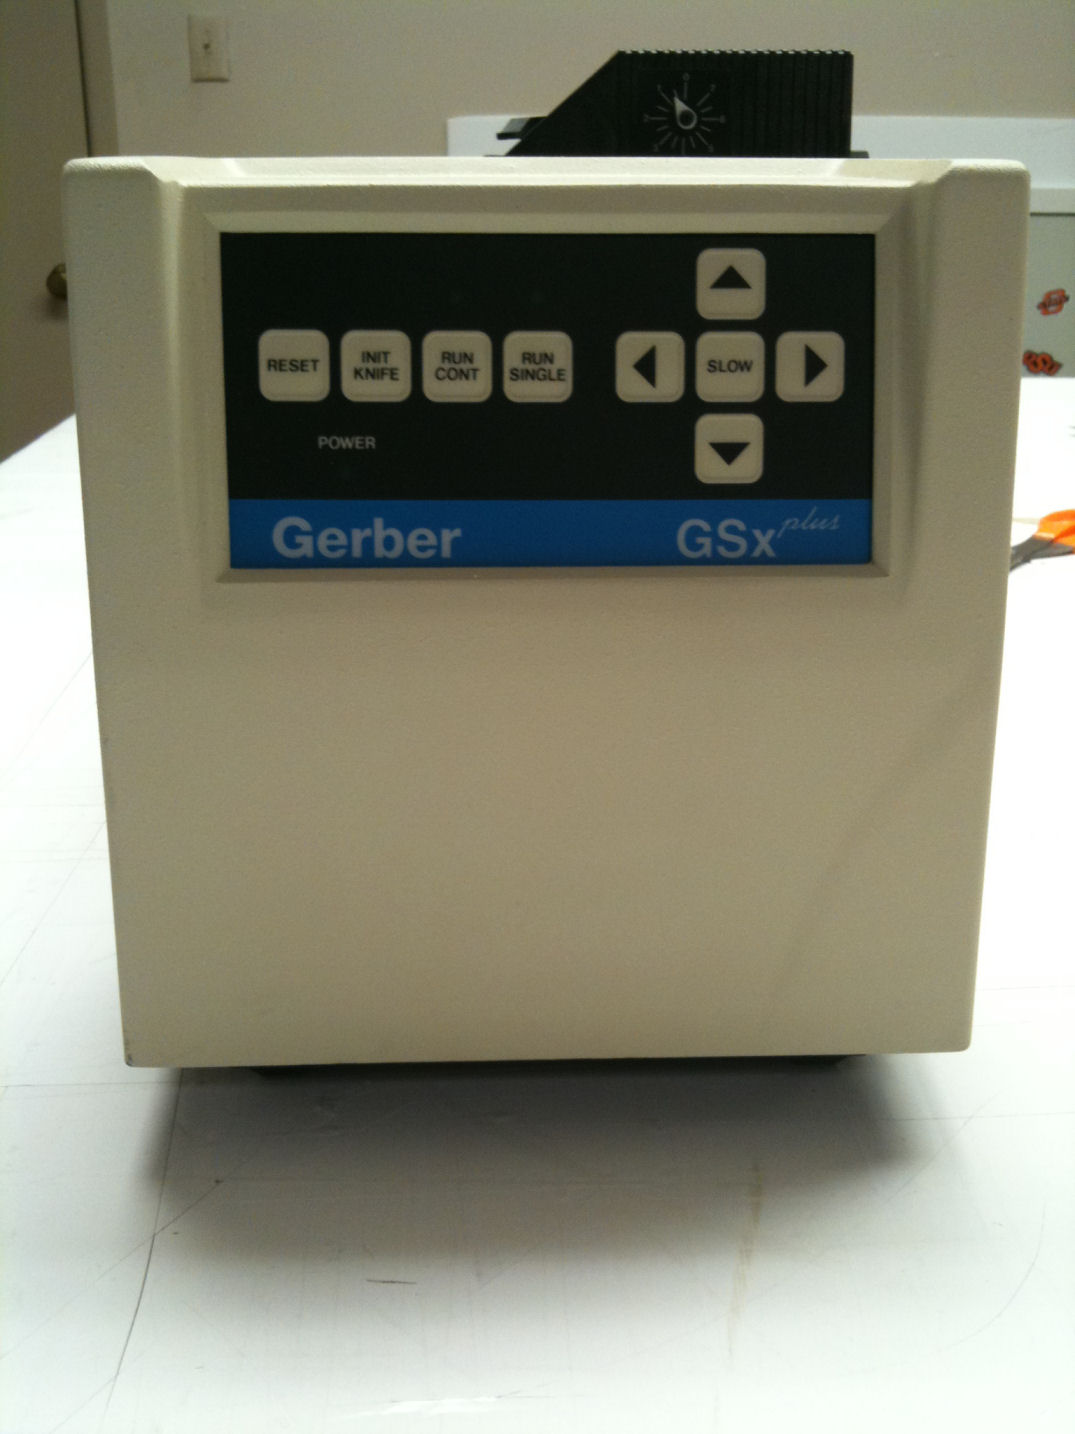 New Gerber Gsx Plus Plotter For Sale